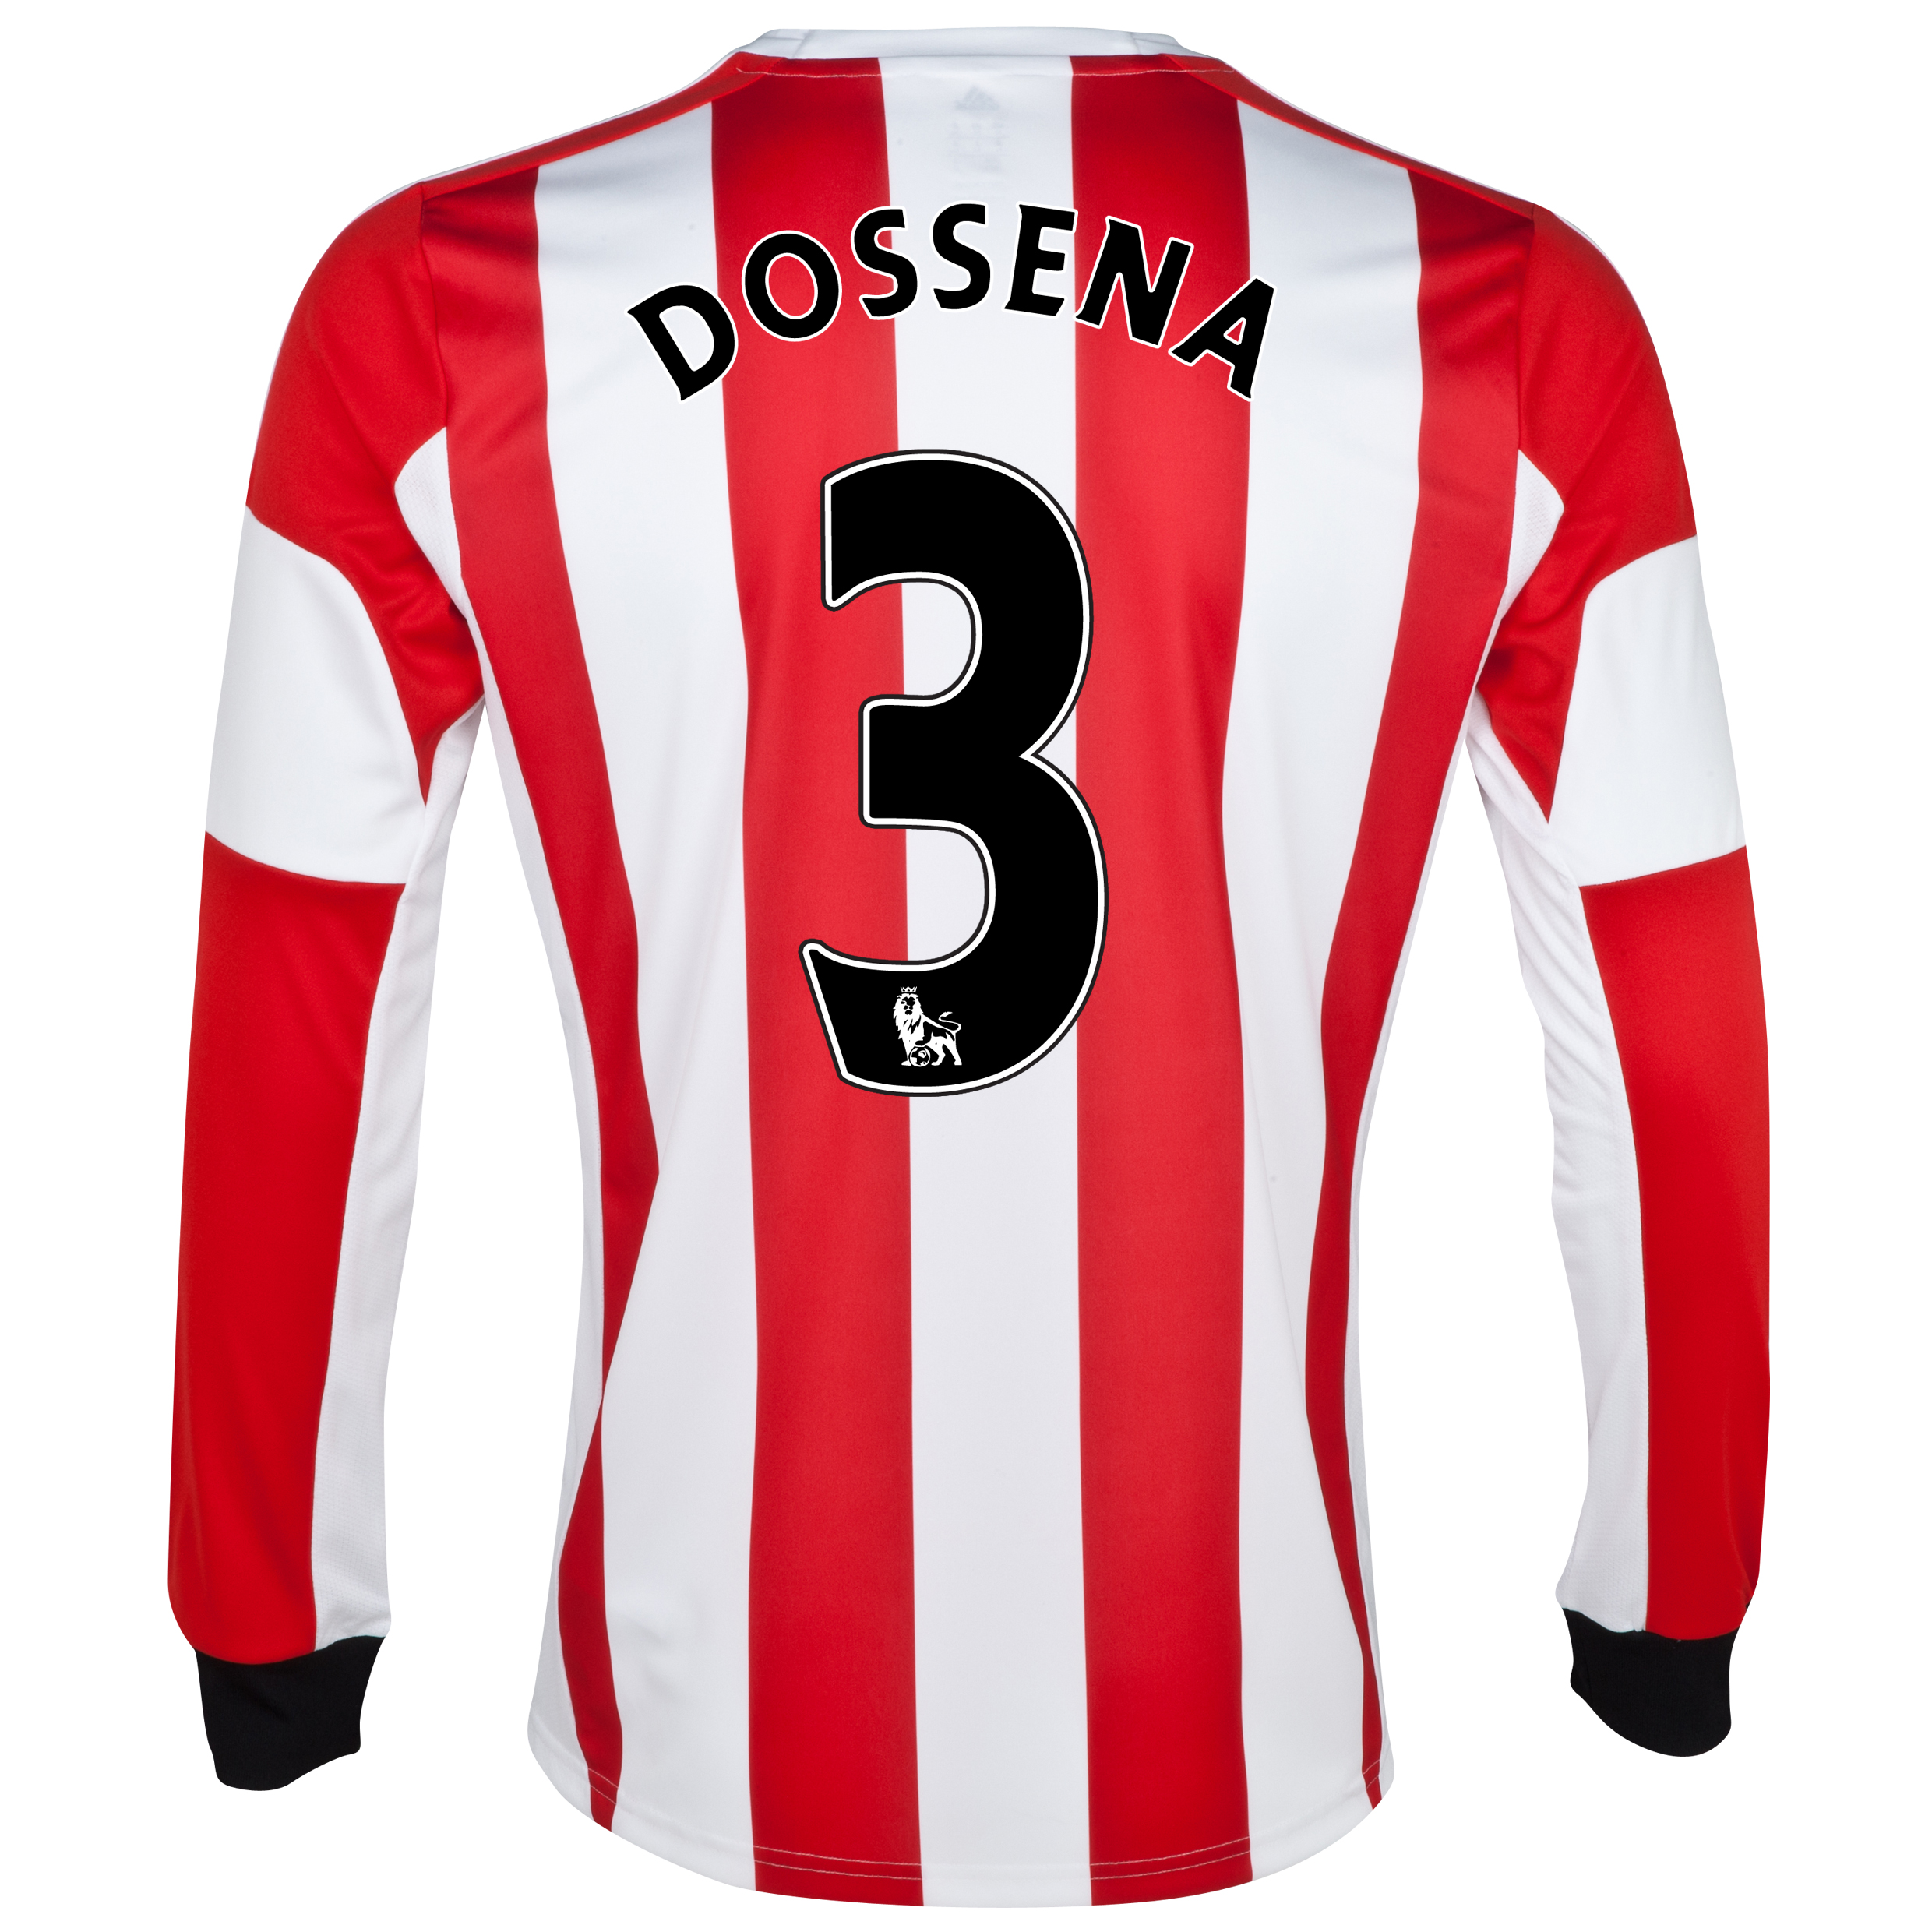 Sunderland Home Shirt 2013/14 - Long Sleeved with Dossena 3 printing